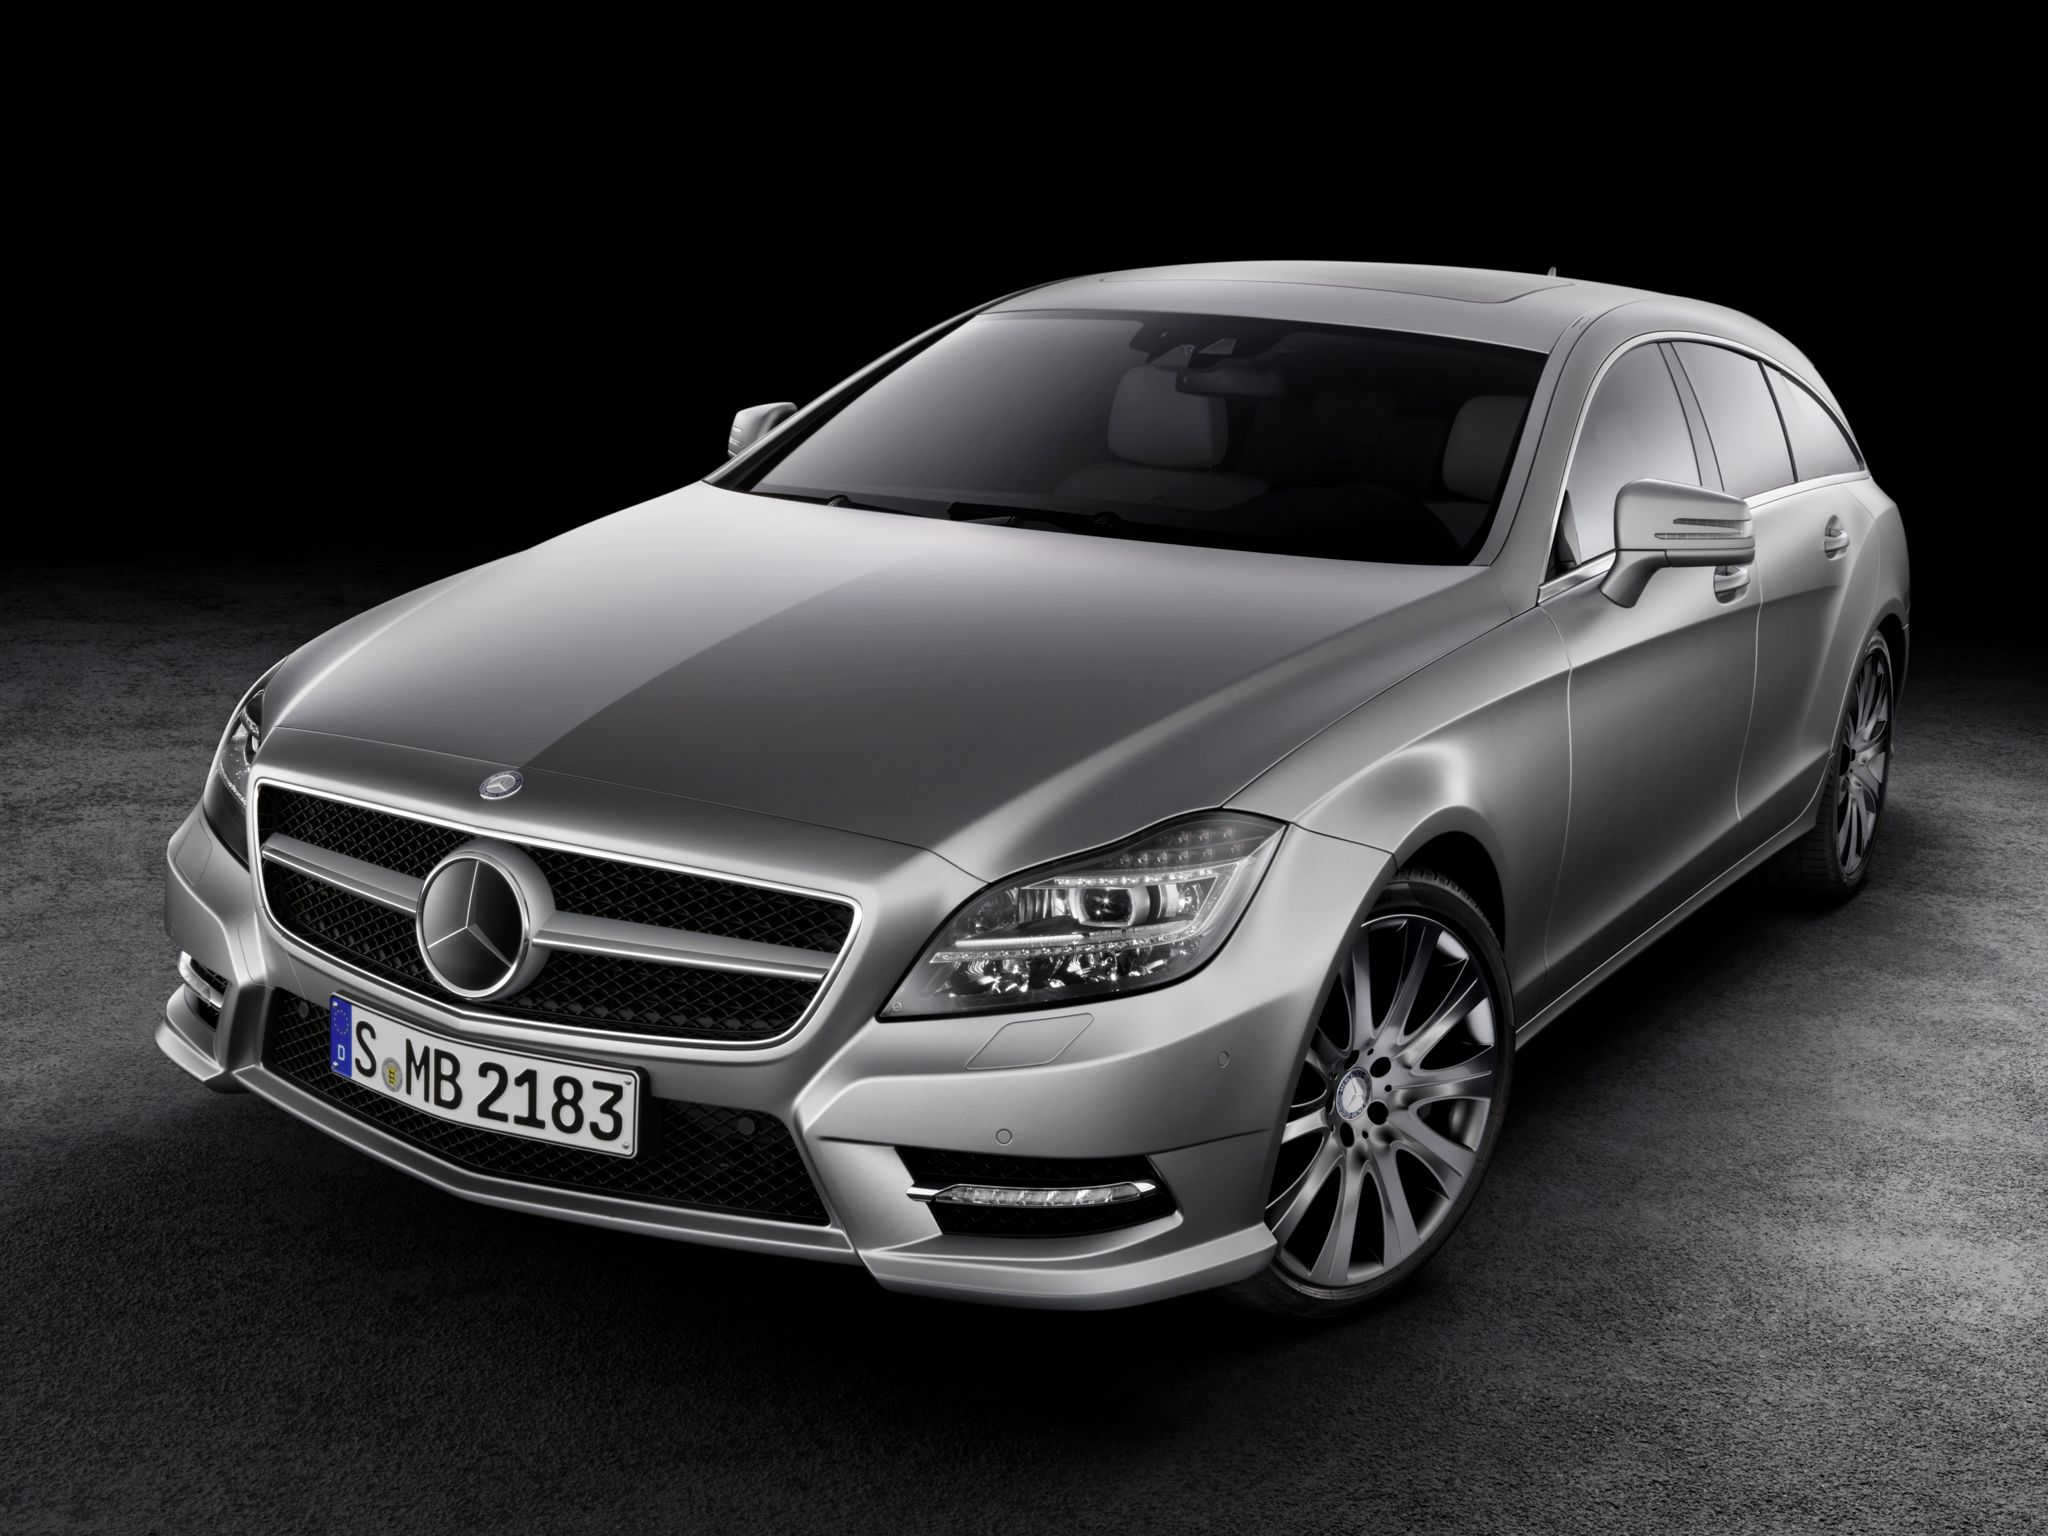 Mercedes-Benz CLS Shooting Brake (2013)